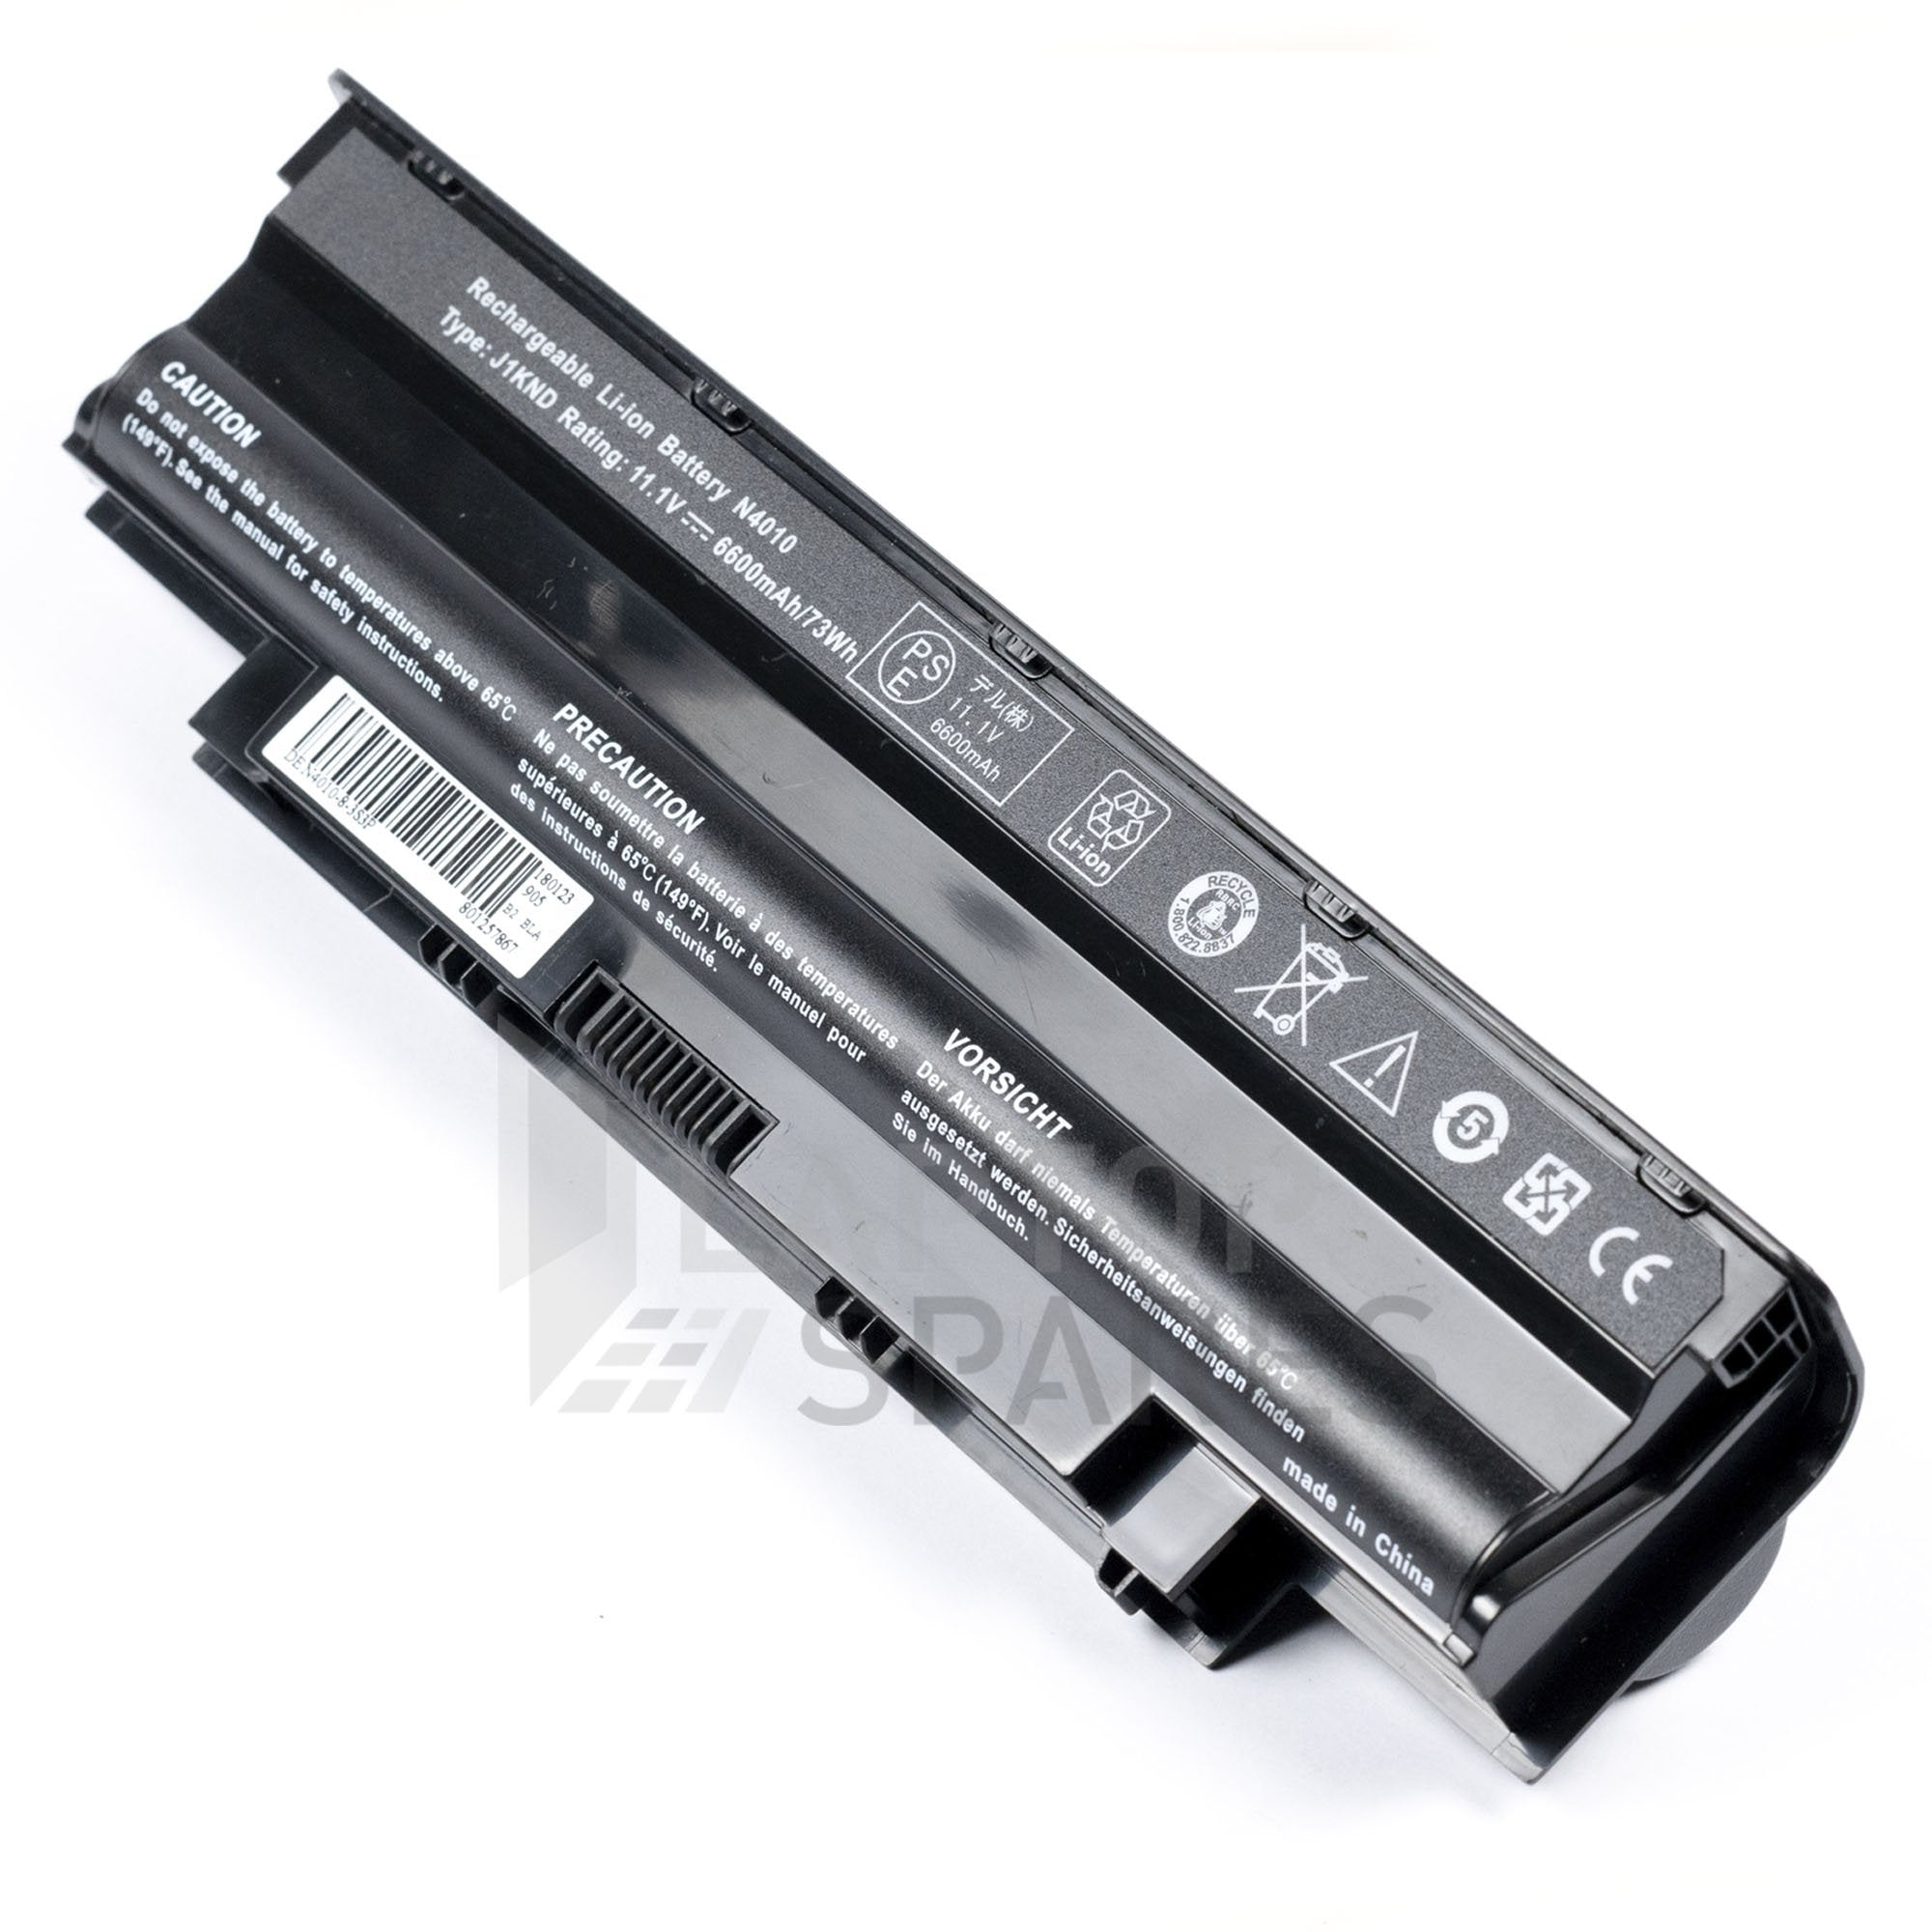 Dell Inspiron M5010R 6600mAh 9 Cell Battery